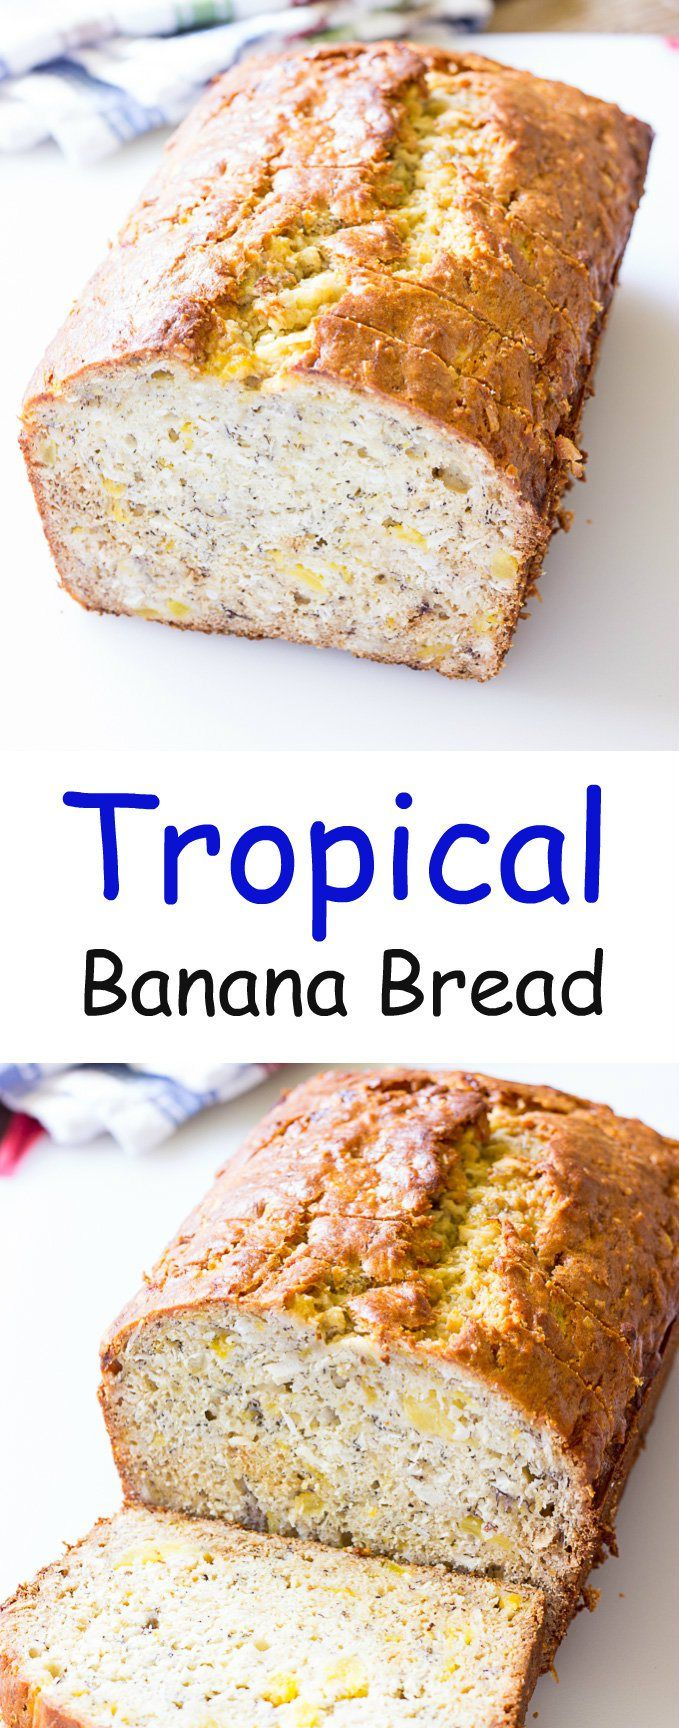 Tropical Banana Bread - Like traditional banana bread but this recipe is made with coconut oil, crushed pineapple, and shredded coconut.  It's perfect for breakfast, or a snack.